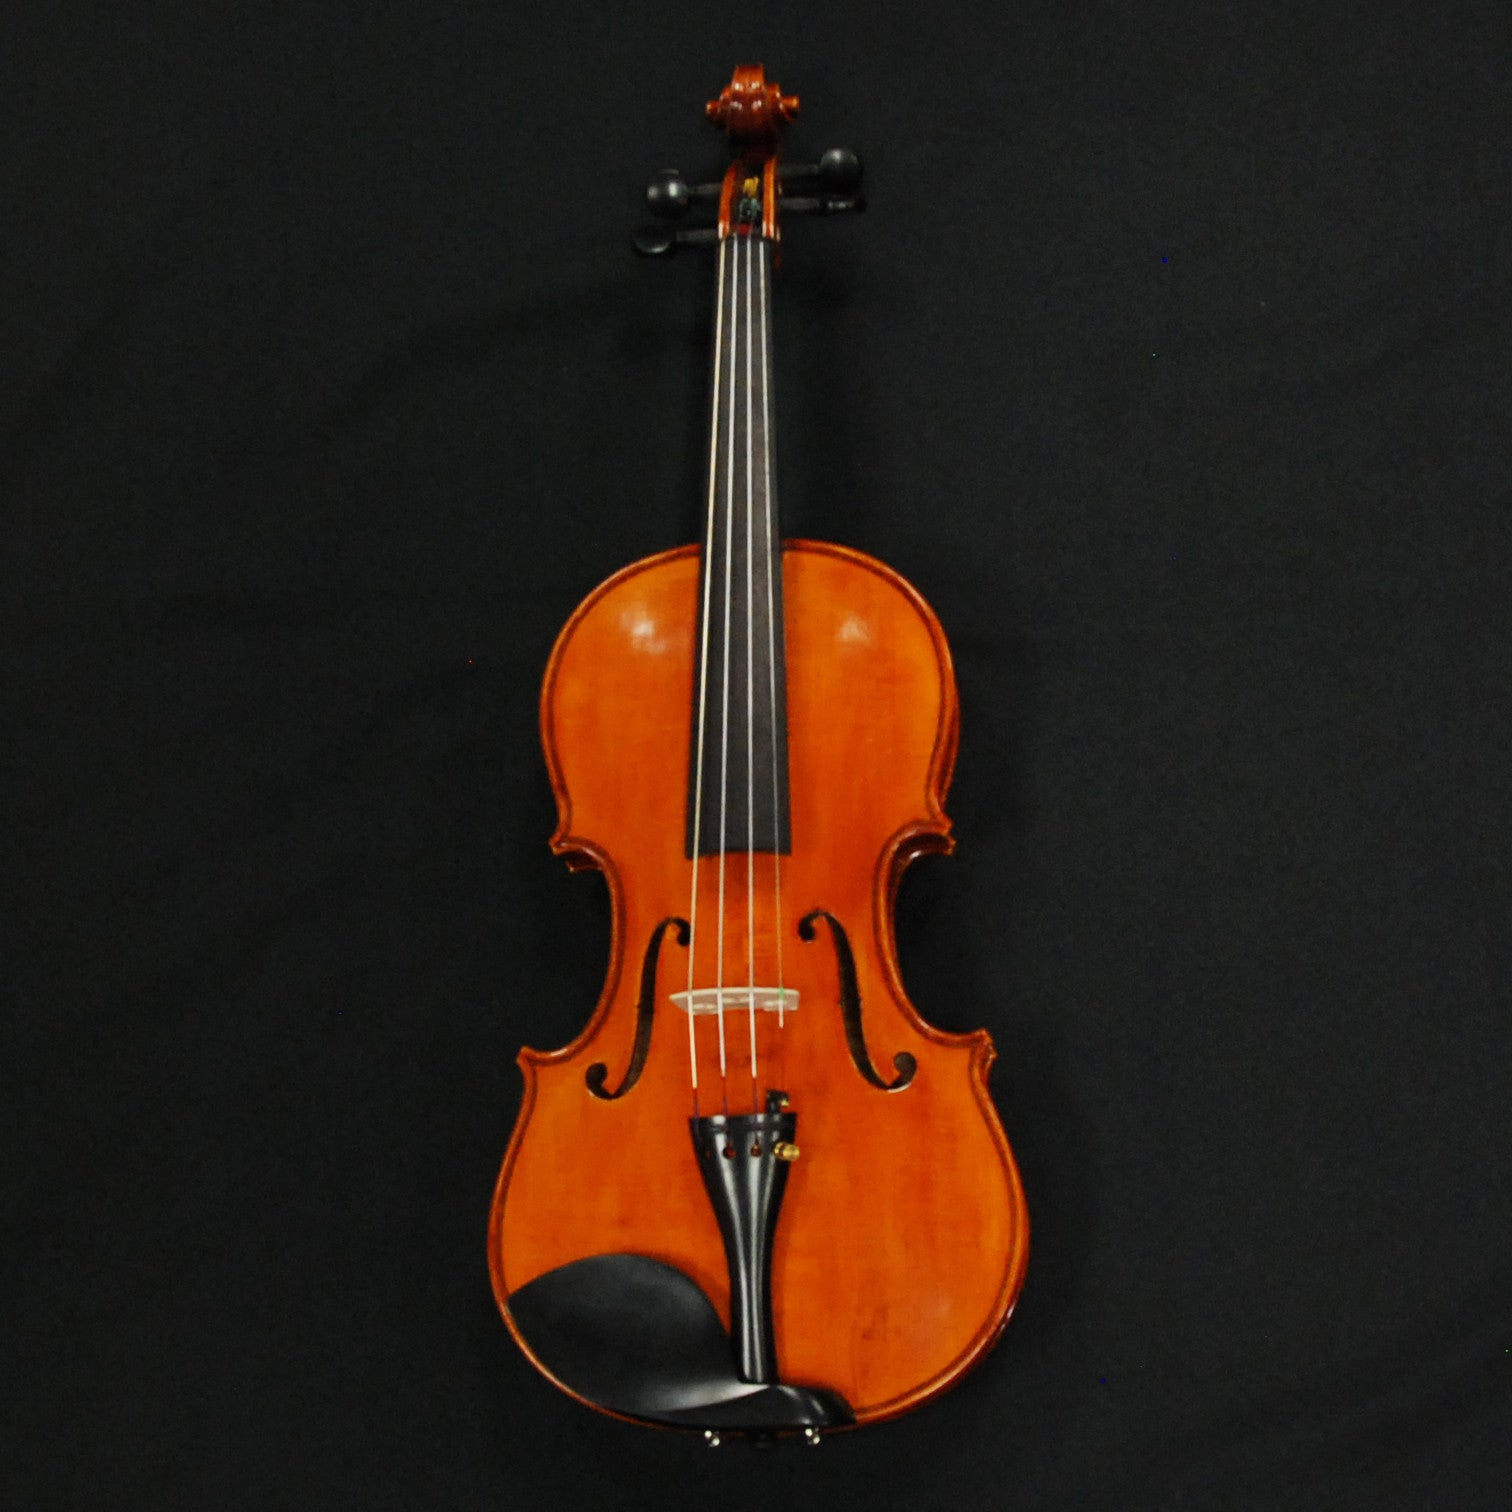 Shop online for Knilling 130VN44 4/4 violin Outfit Flame Maple/ Spruce today.  Now available for purchase from Midlothian Music of Orland Park, Illinois, USA